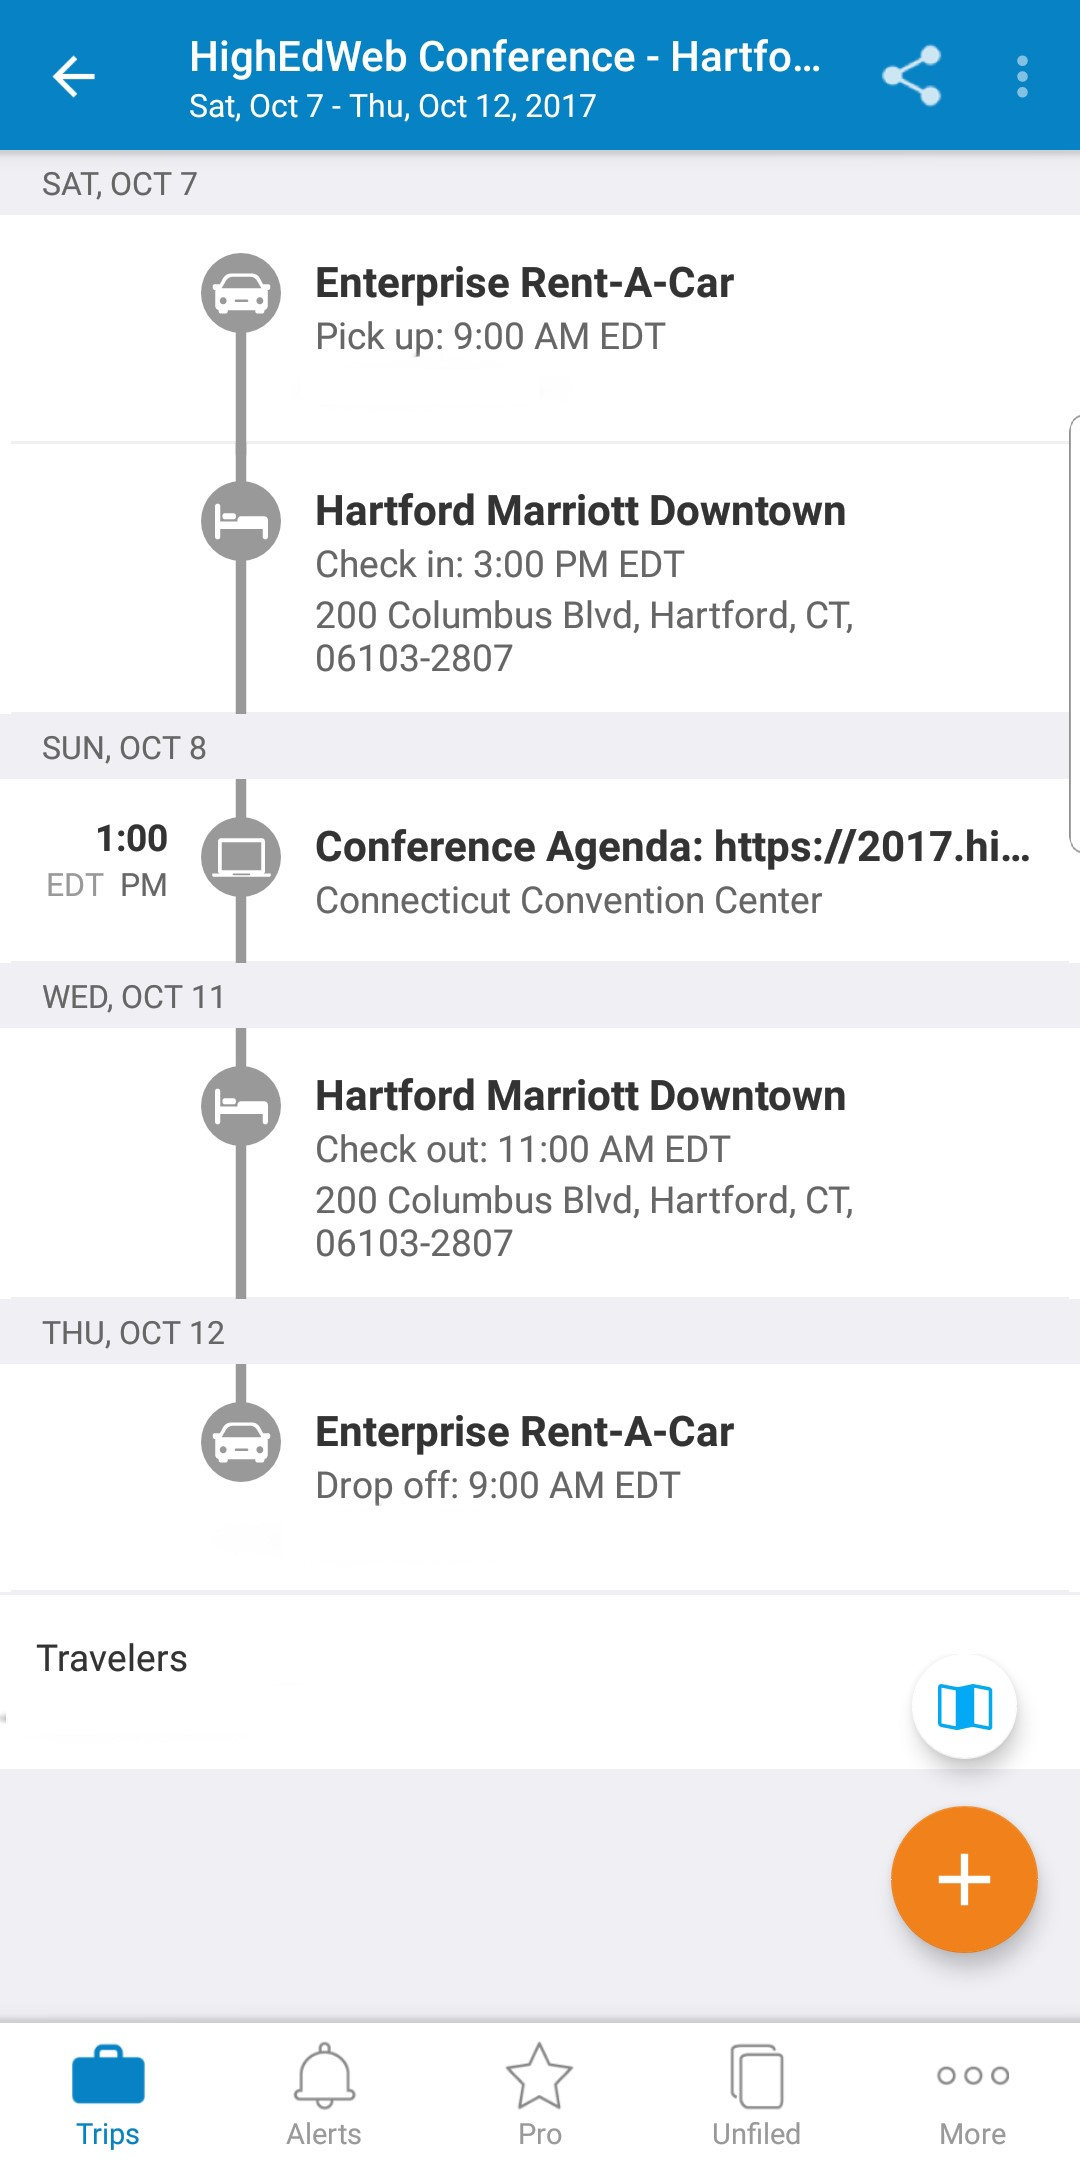 In TripIt Pro, you'll see an itinerary showing your trip's activities organized by day in chronological order.